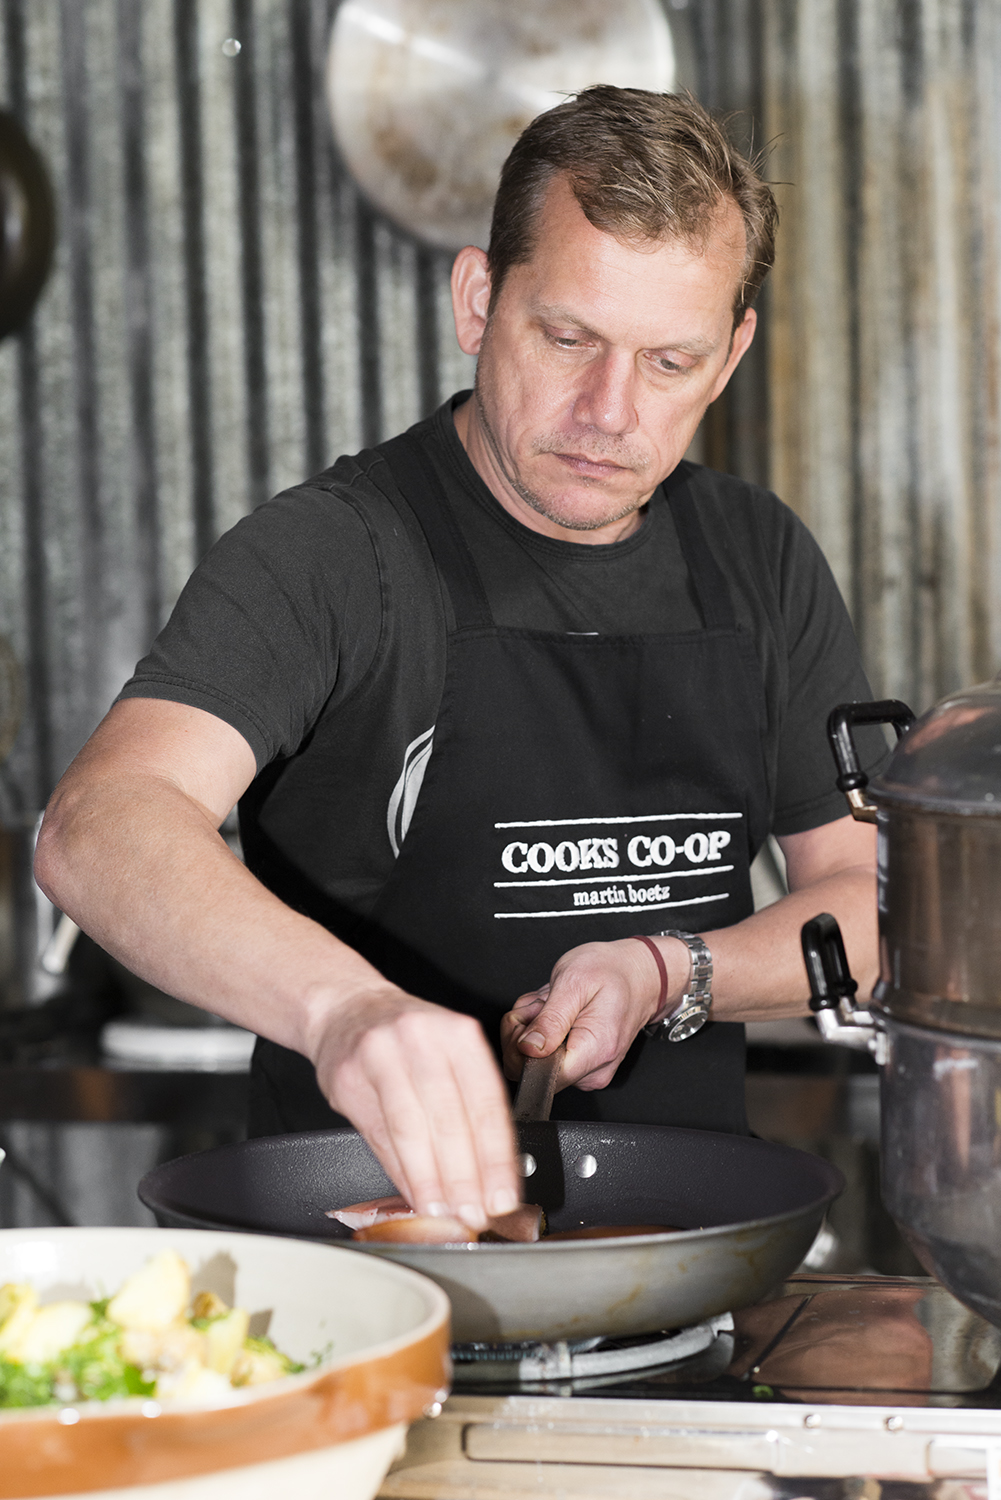 Cooks Co-Op - Executive Chef Martin Boets